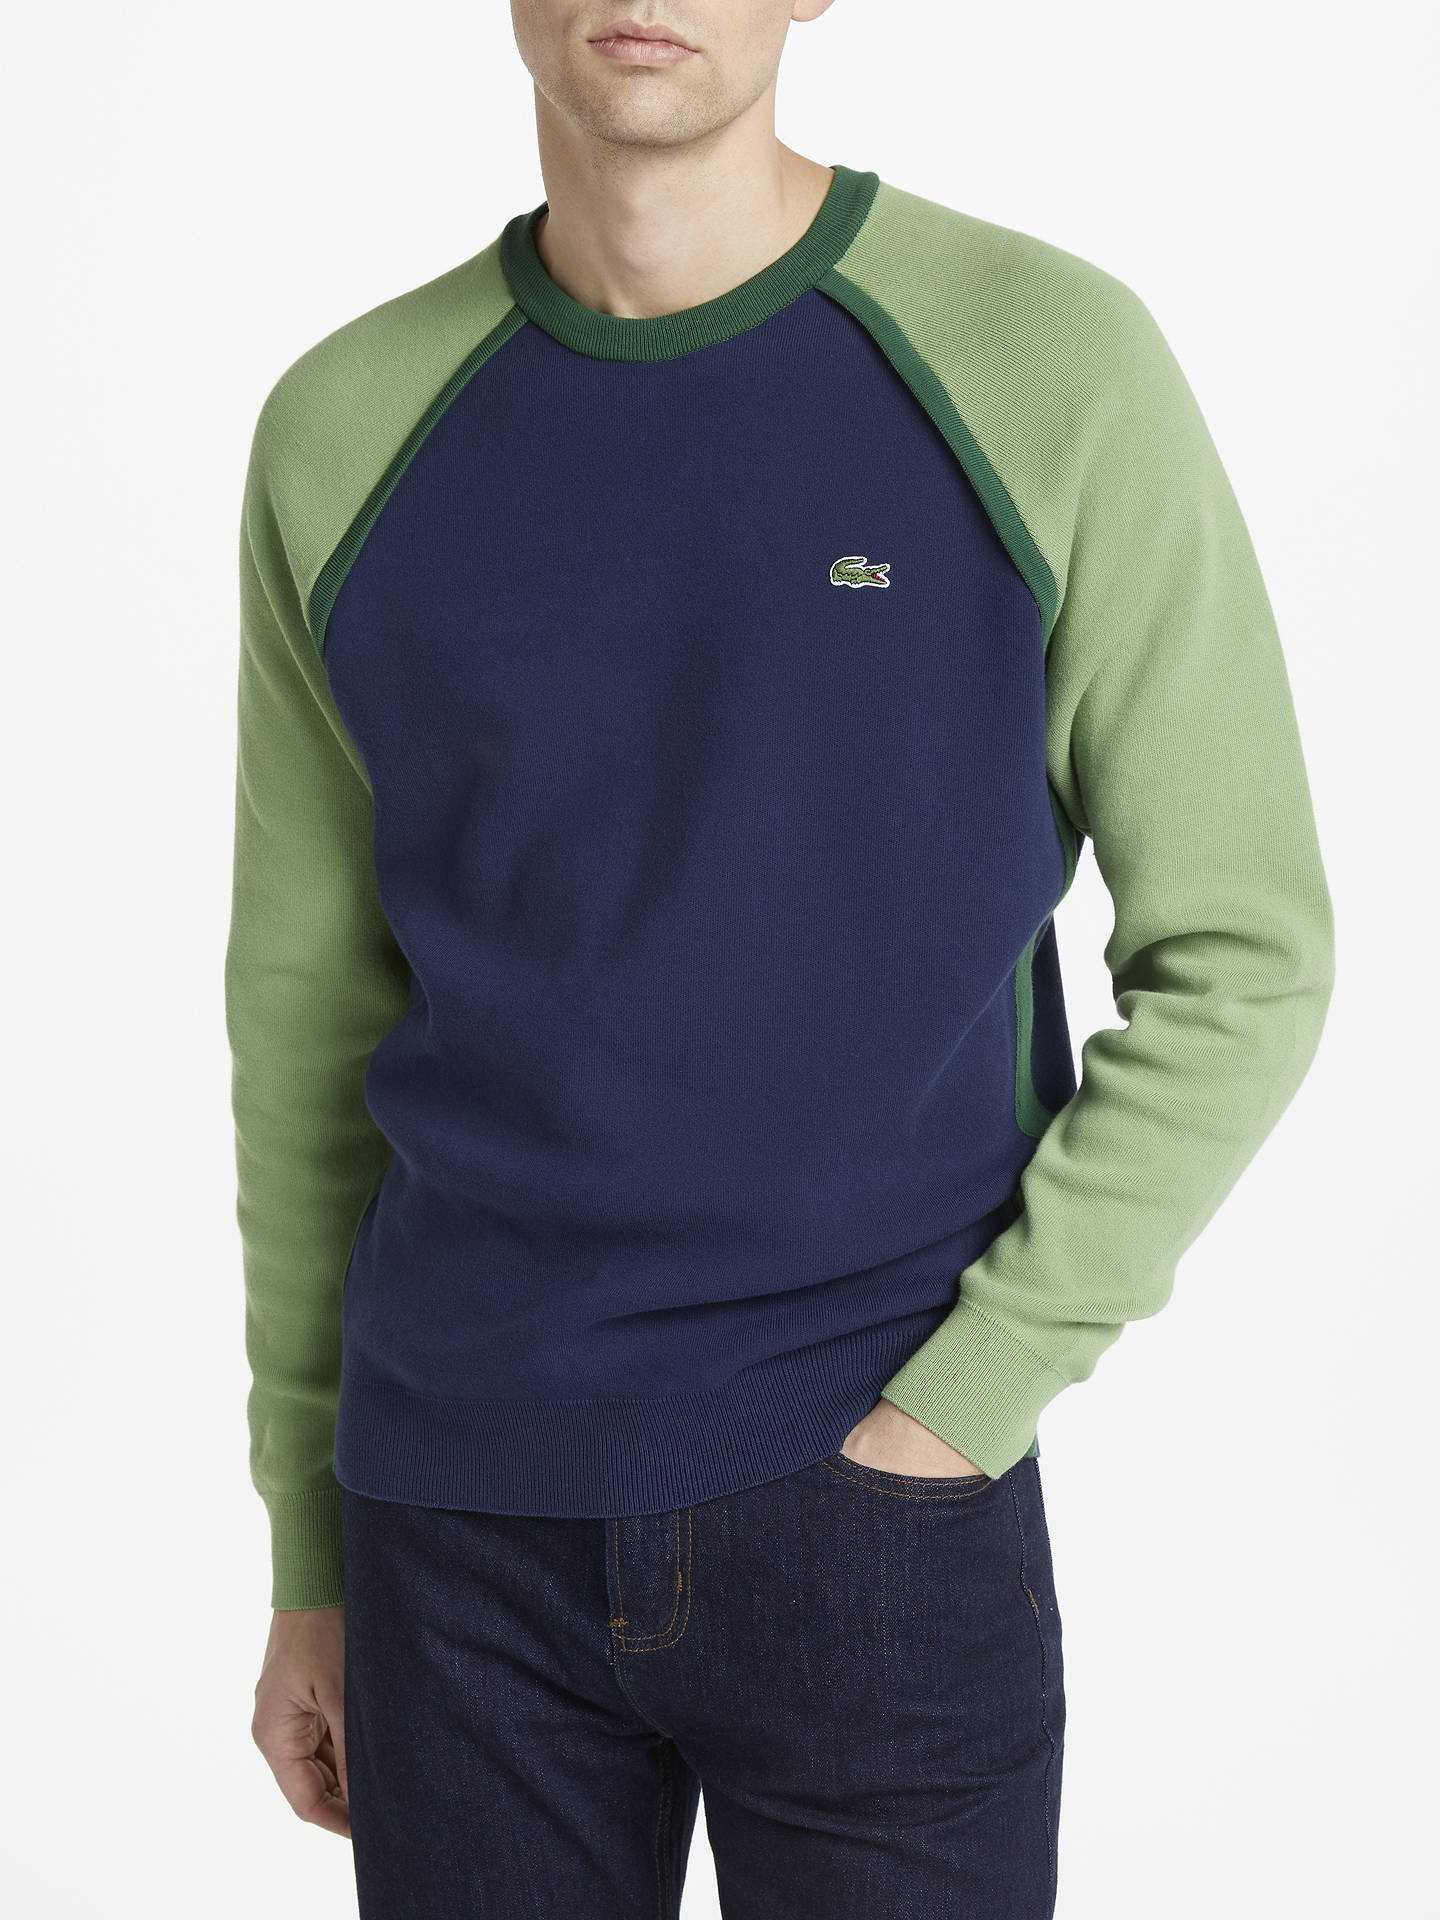 newest style best value new style Lacoste Made In France Colour Block Jumper, Navy/Green at ...